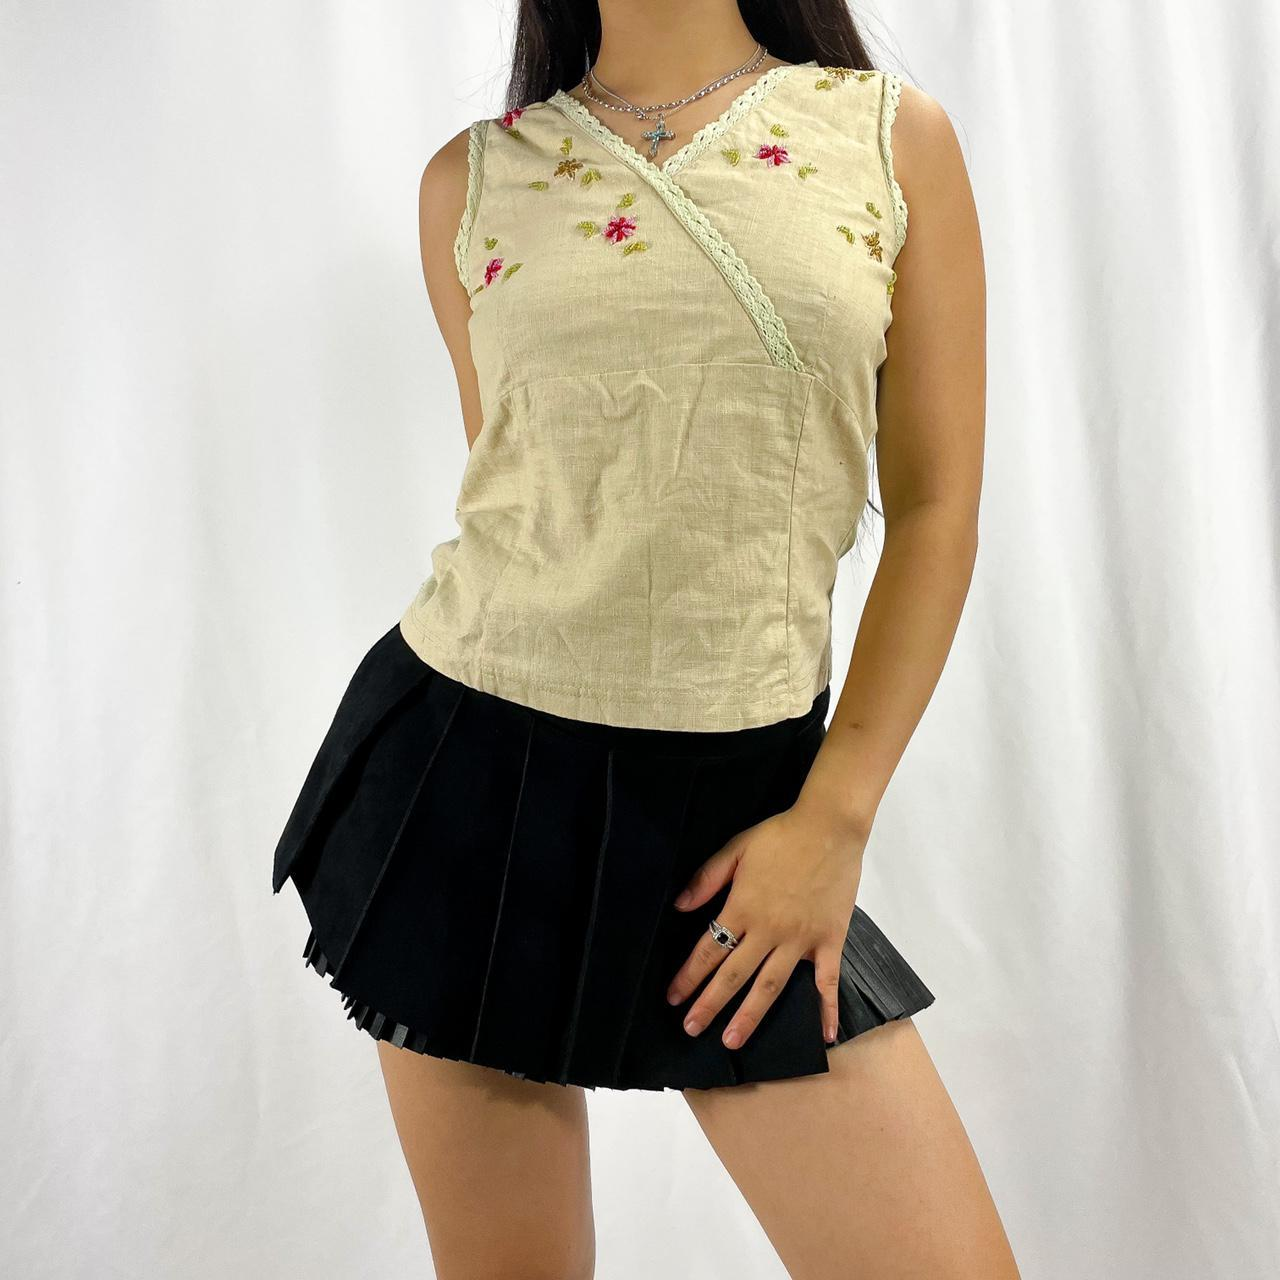 Product Image 1 - Unique linen Top with beaded